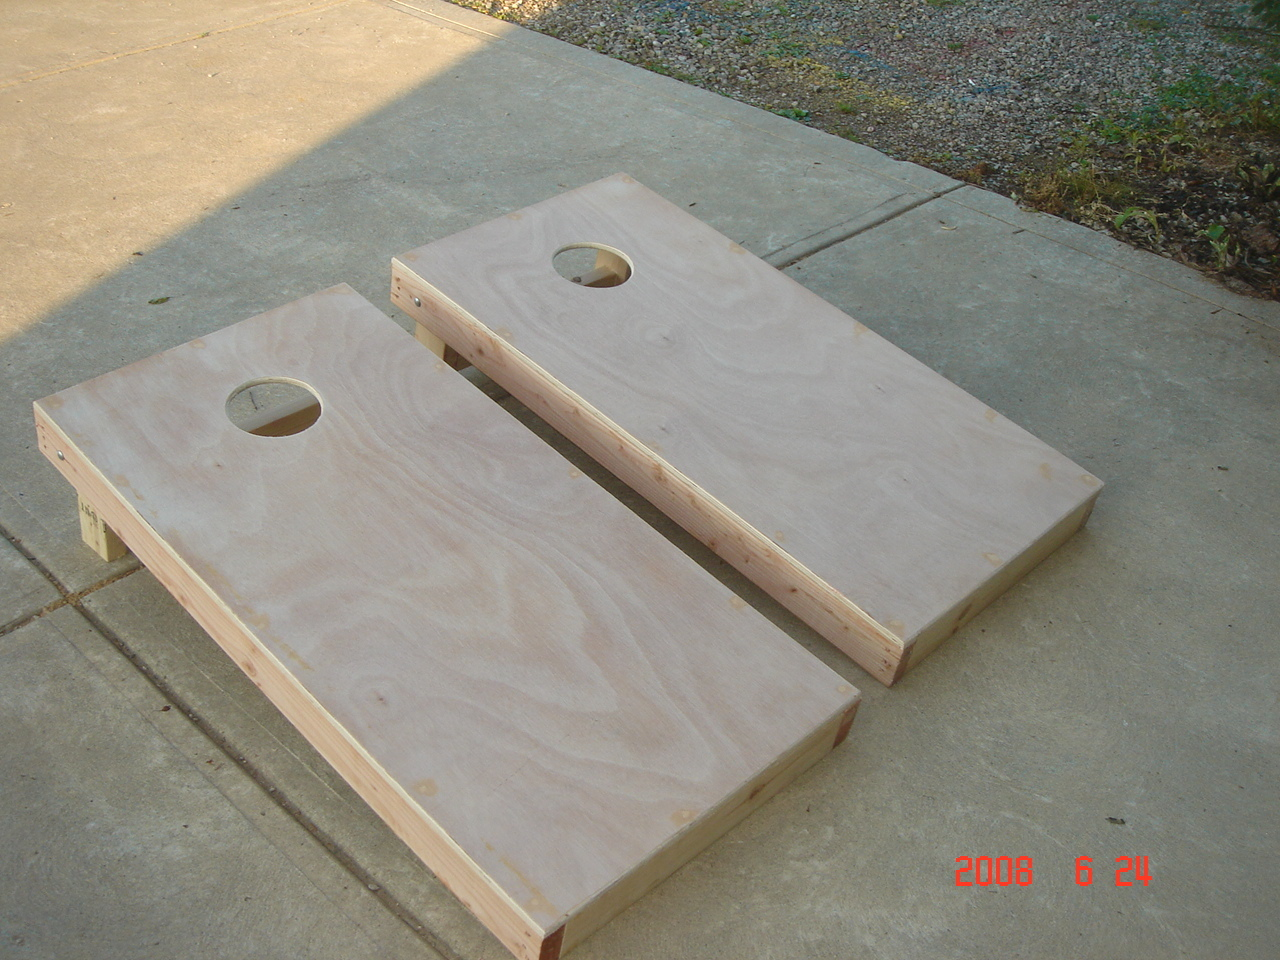 Primary image for Regulation Size, Sturdily built corn hole boards